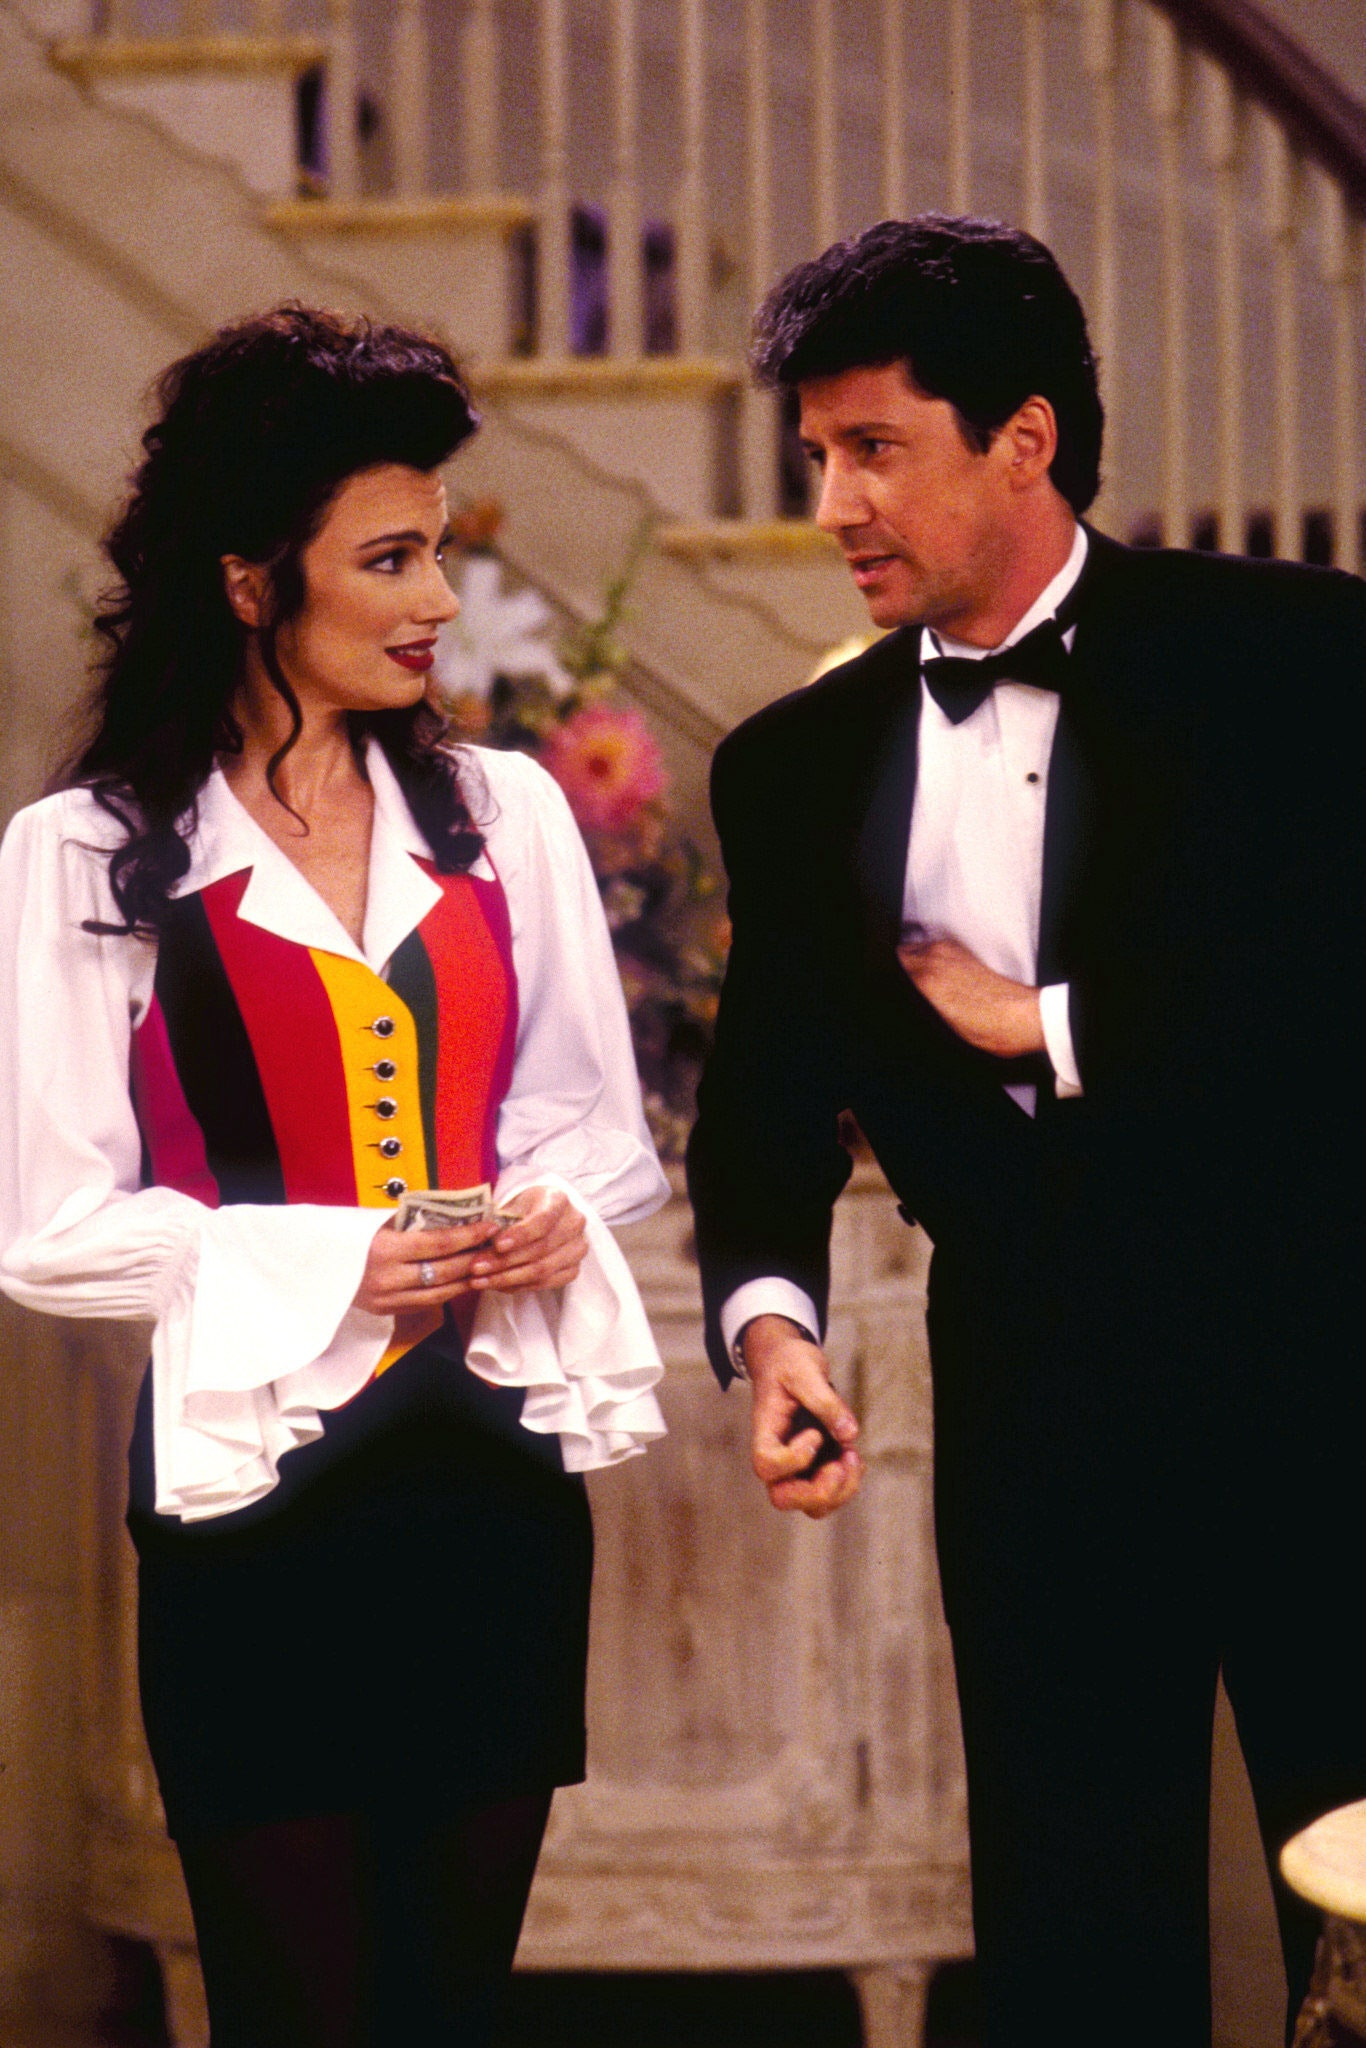 LOS ANGELES JANUARY 3 THE NANNY featuring Fran Drescher and Charles Shaugnessy. January 1994.